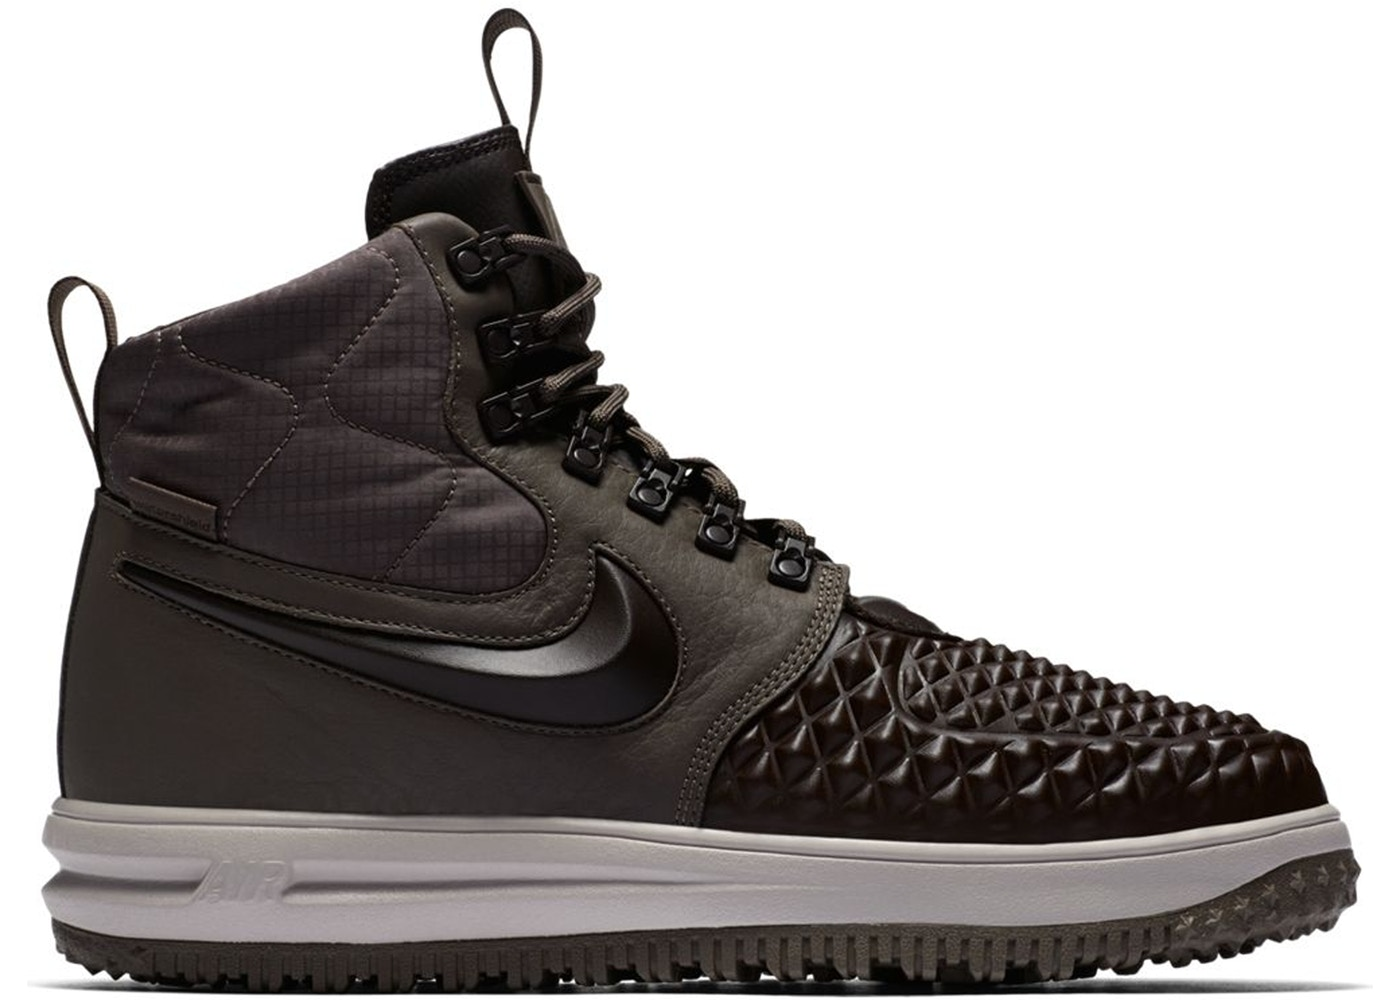 ナイキ NIKE ルーナー ルナー スニーカー 【 LUNAR FORCE 1 DUCKBOOT 17 RIDGEROCK VELVET BROWN 】 メンズ